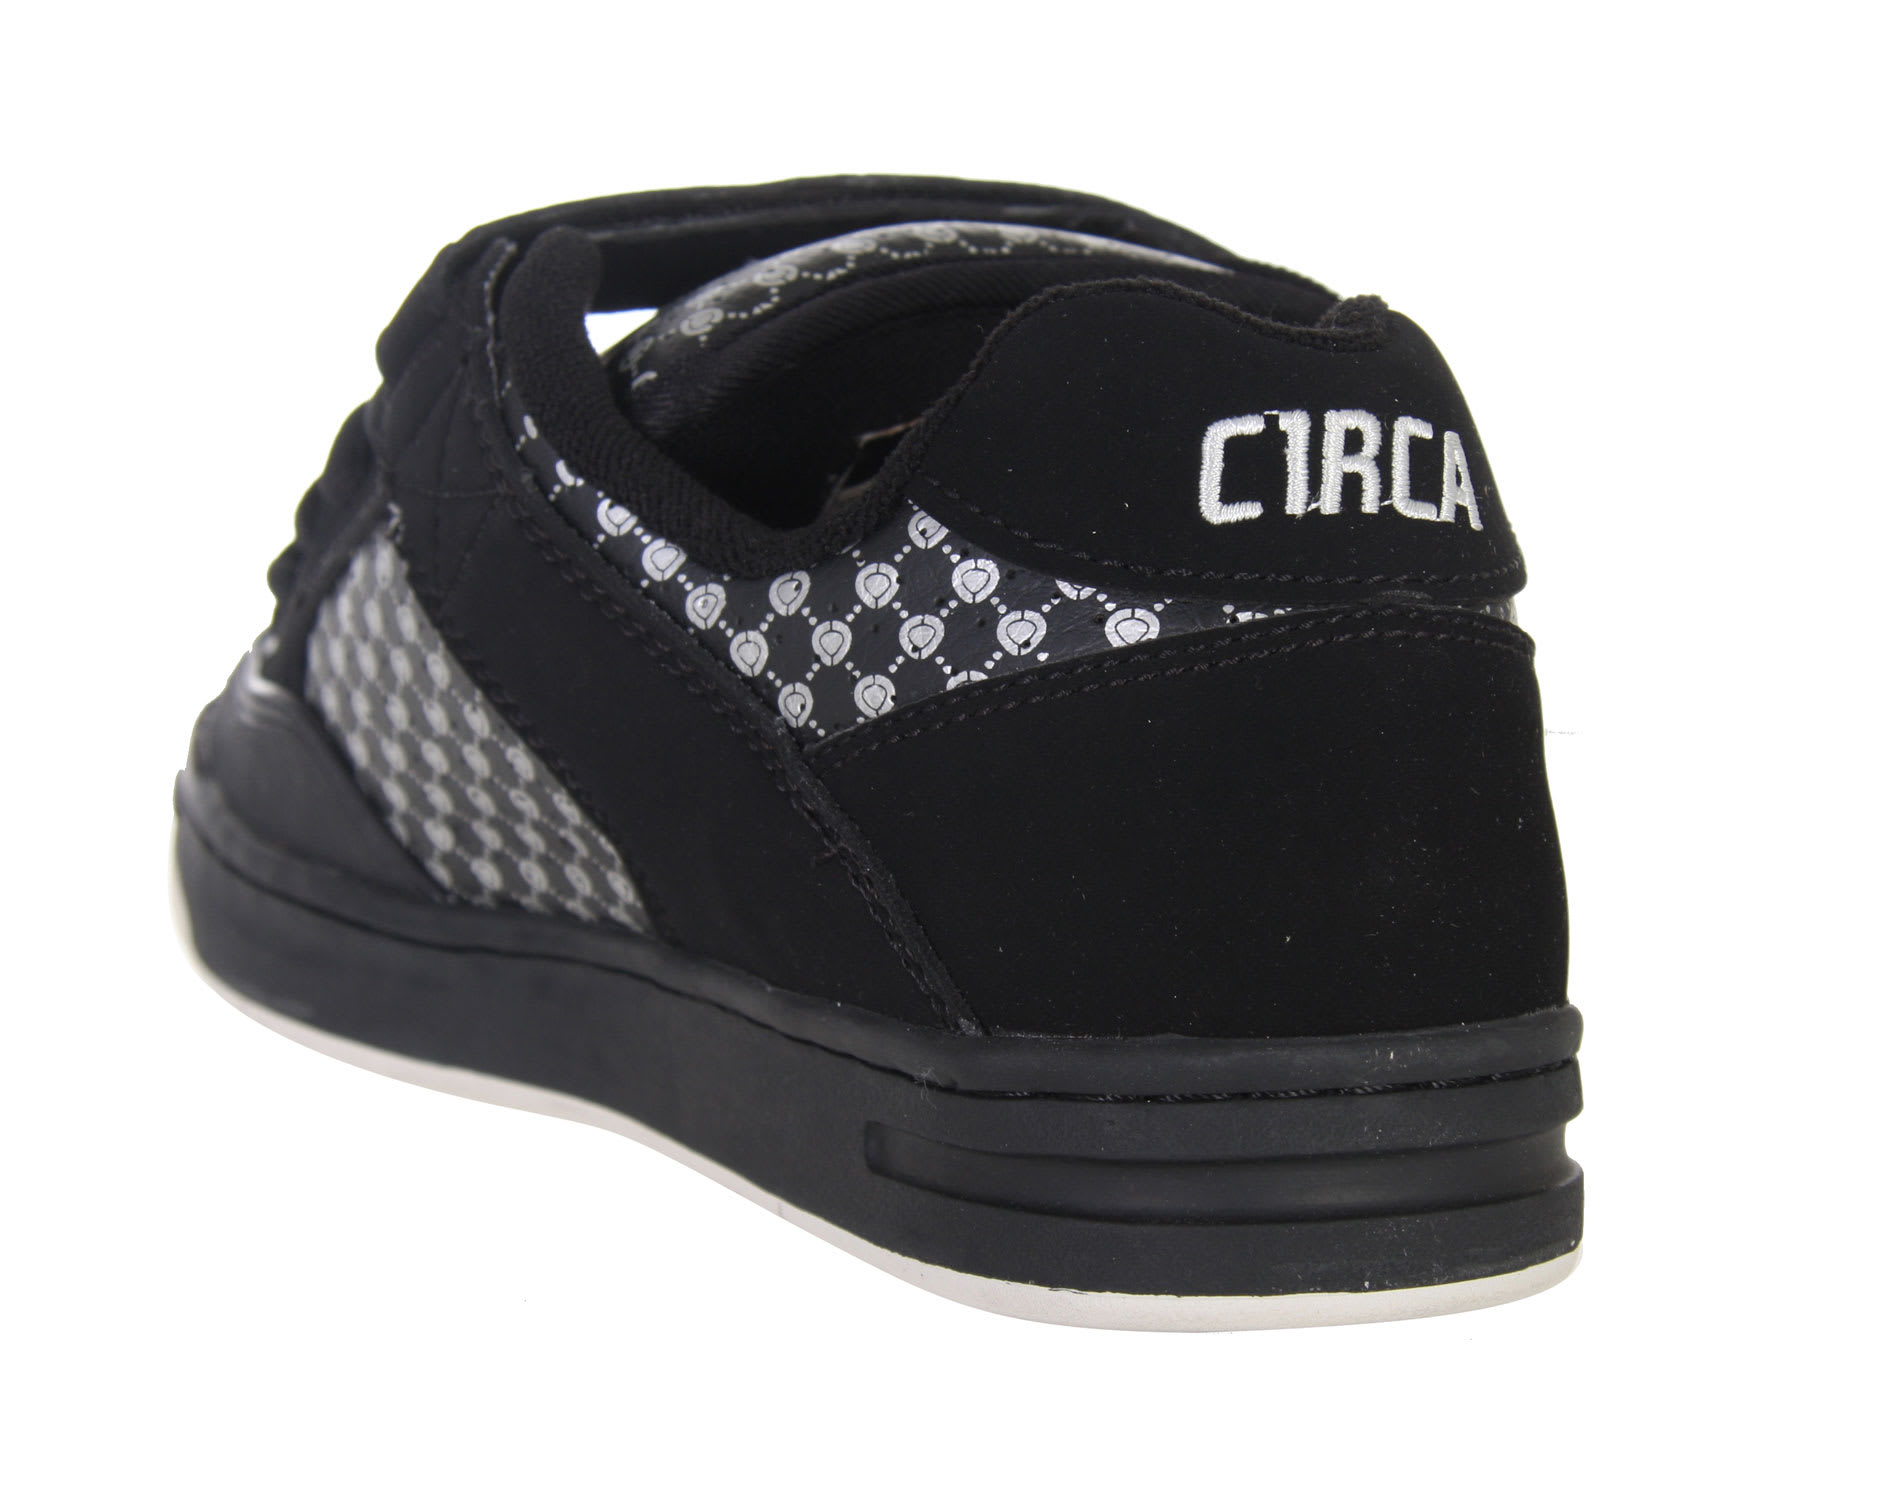 On Sale Circa Cx205 Skate Shoes Up To 80 Off